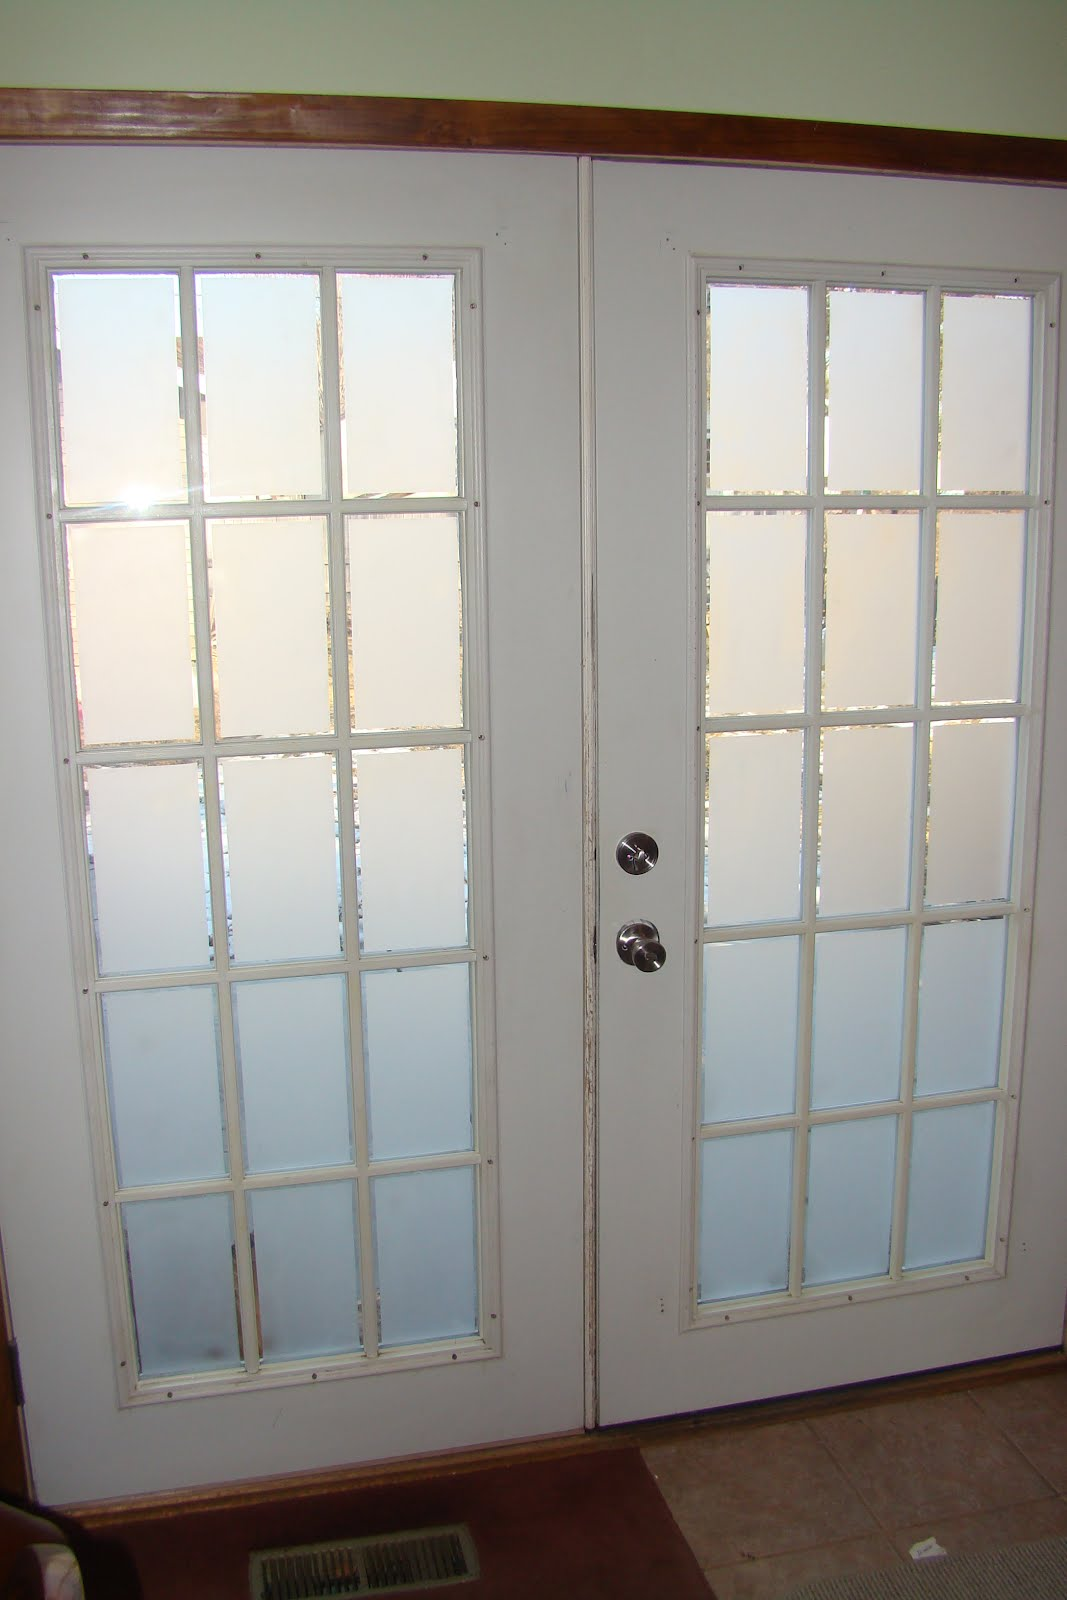 cindy riddle frosted glass on french doors On glass french doors